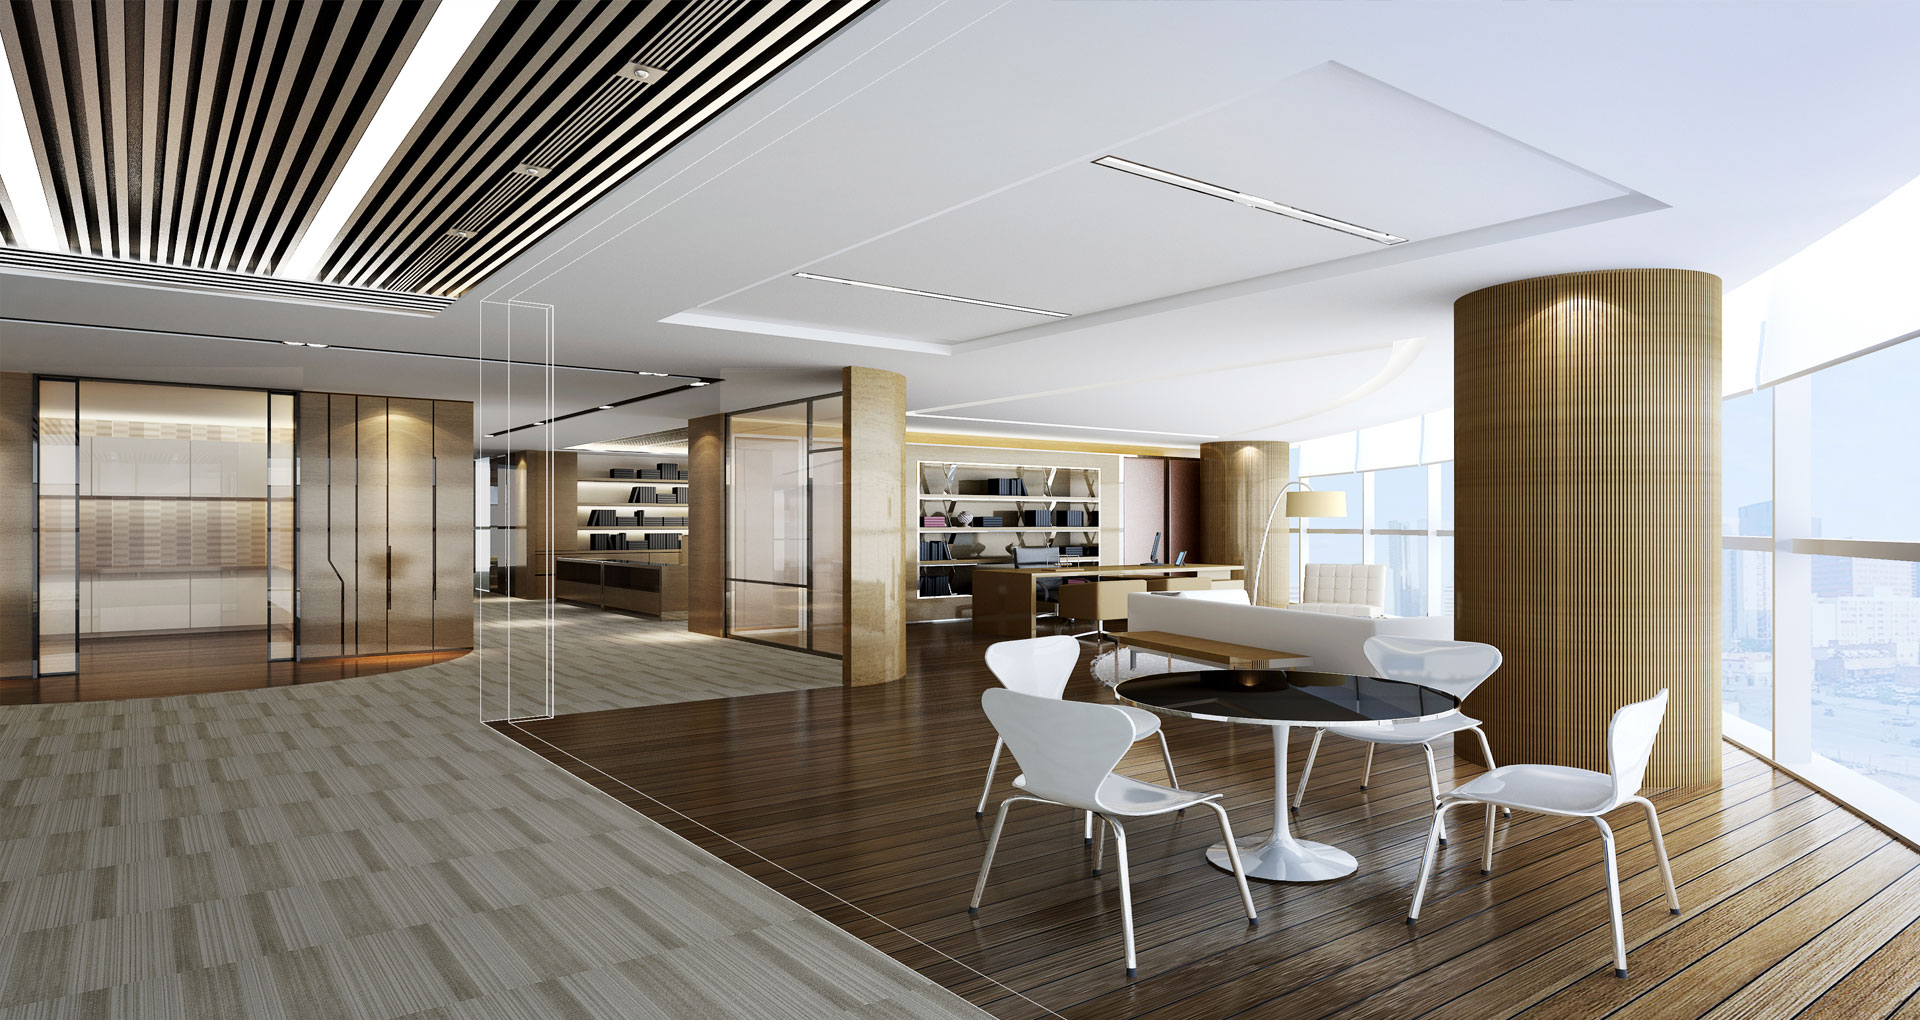 Office interior design inpro concepts design for The interior design firm